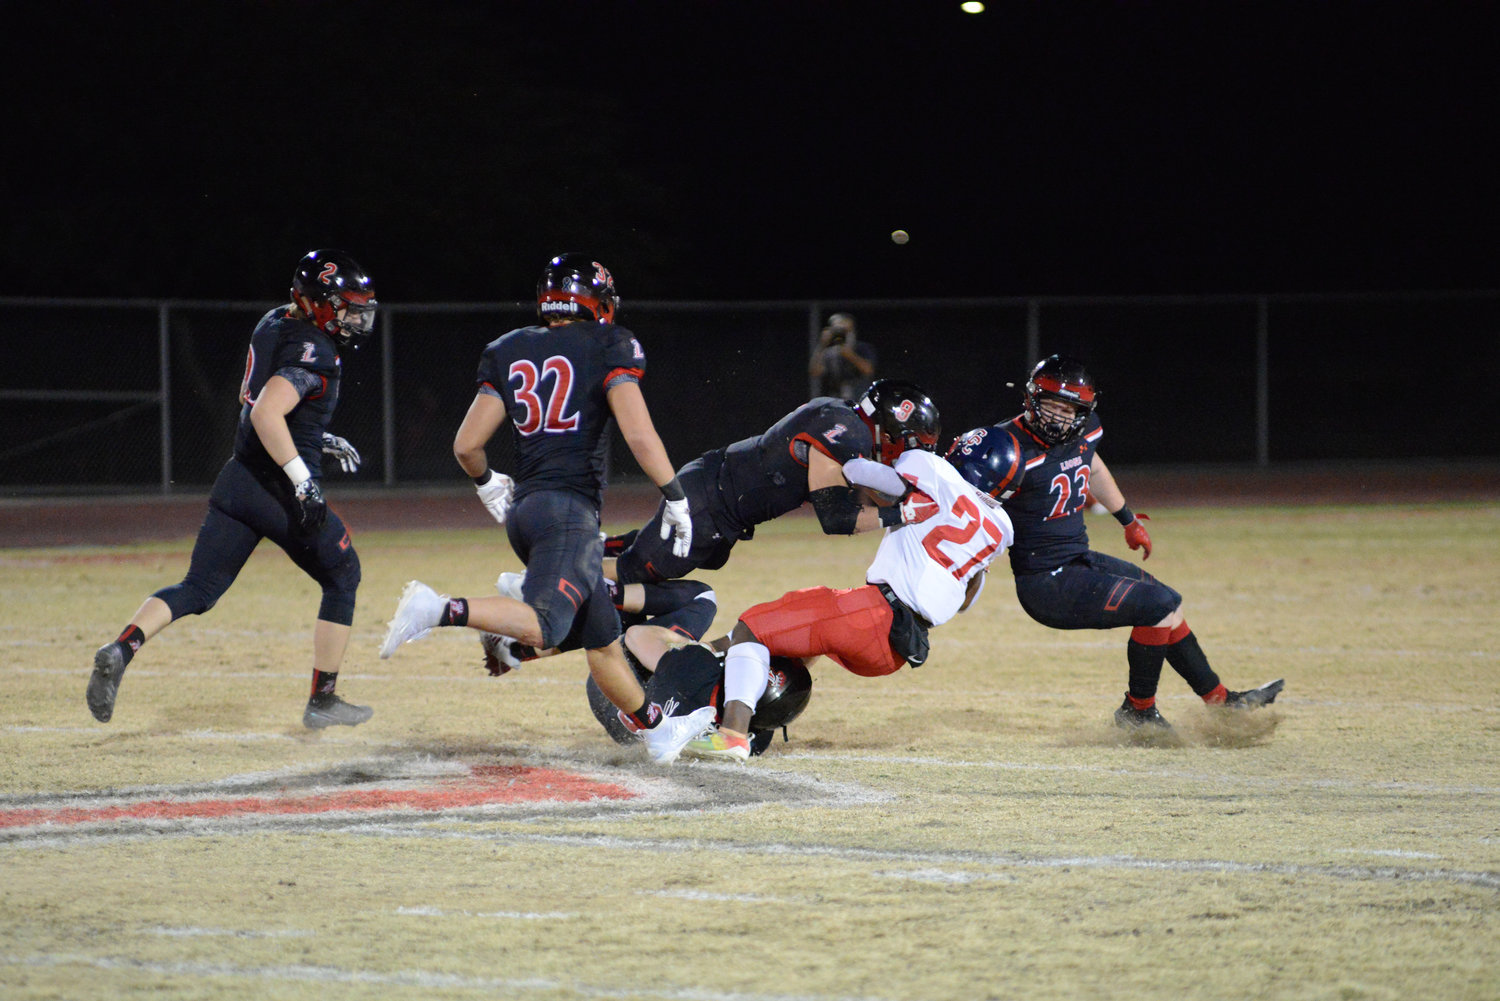 The Liberty defense, led by junior strong safety Jax Stam (leaping No. 8) and senior free safety Shane Pitts (No. 23) surrounds Centennial sophomore running back Kavaughn Clark during their regular season showdown Nov. 20 at Liberty High School in Peoria. Stam and Clark are first-team All West Valley Preps players as underclassmen. Pitts is the overall player of the year for his play on the Lions defense and as its kicker.